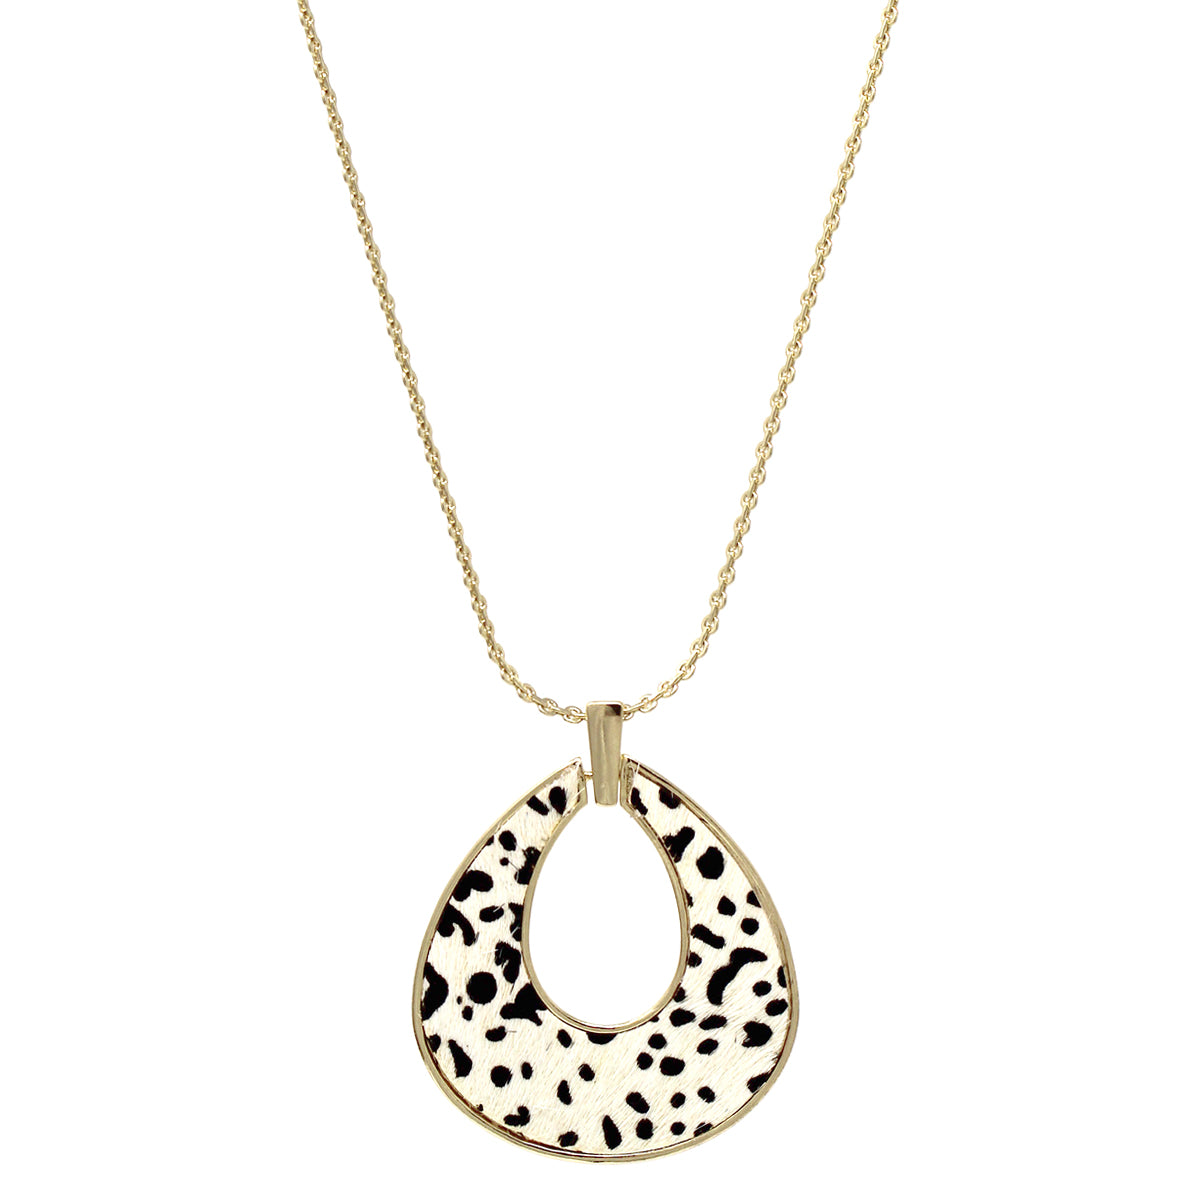 Animal Print Faux Leather Embellished Teardrop Shape Pendant Long Necklace